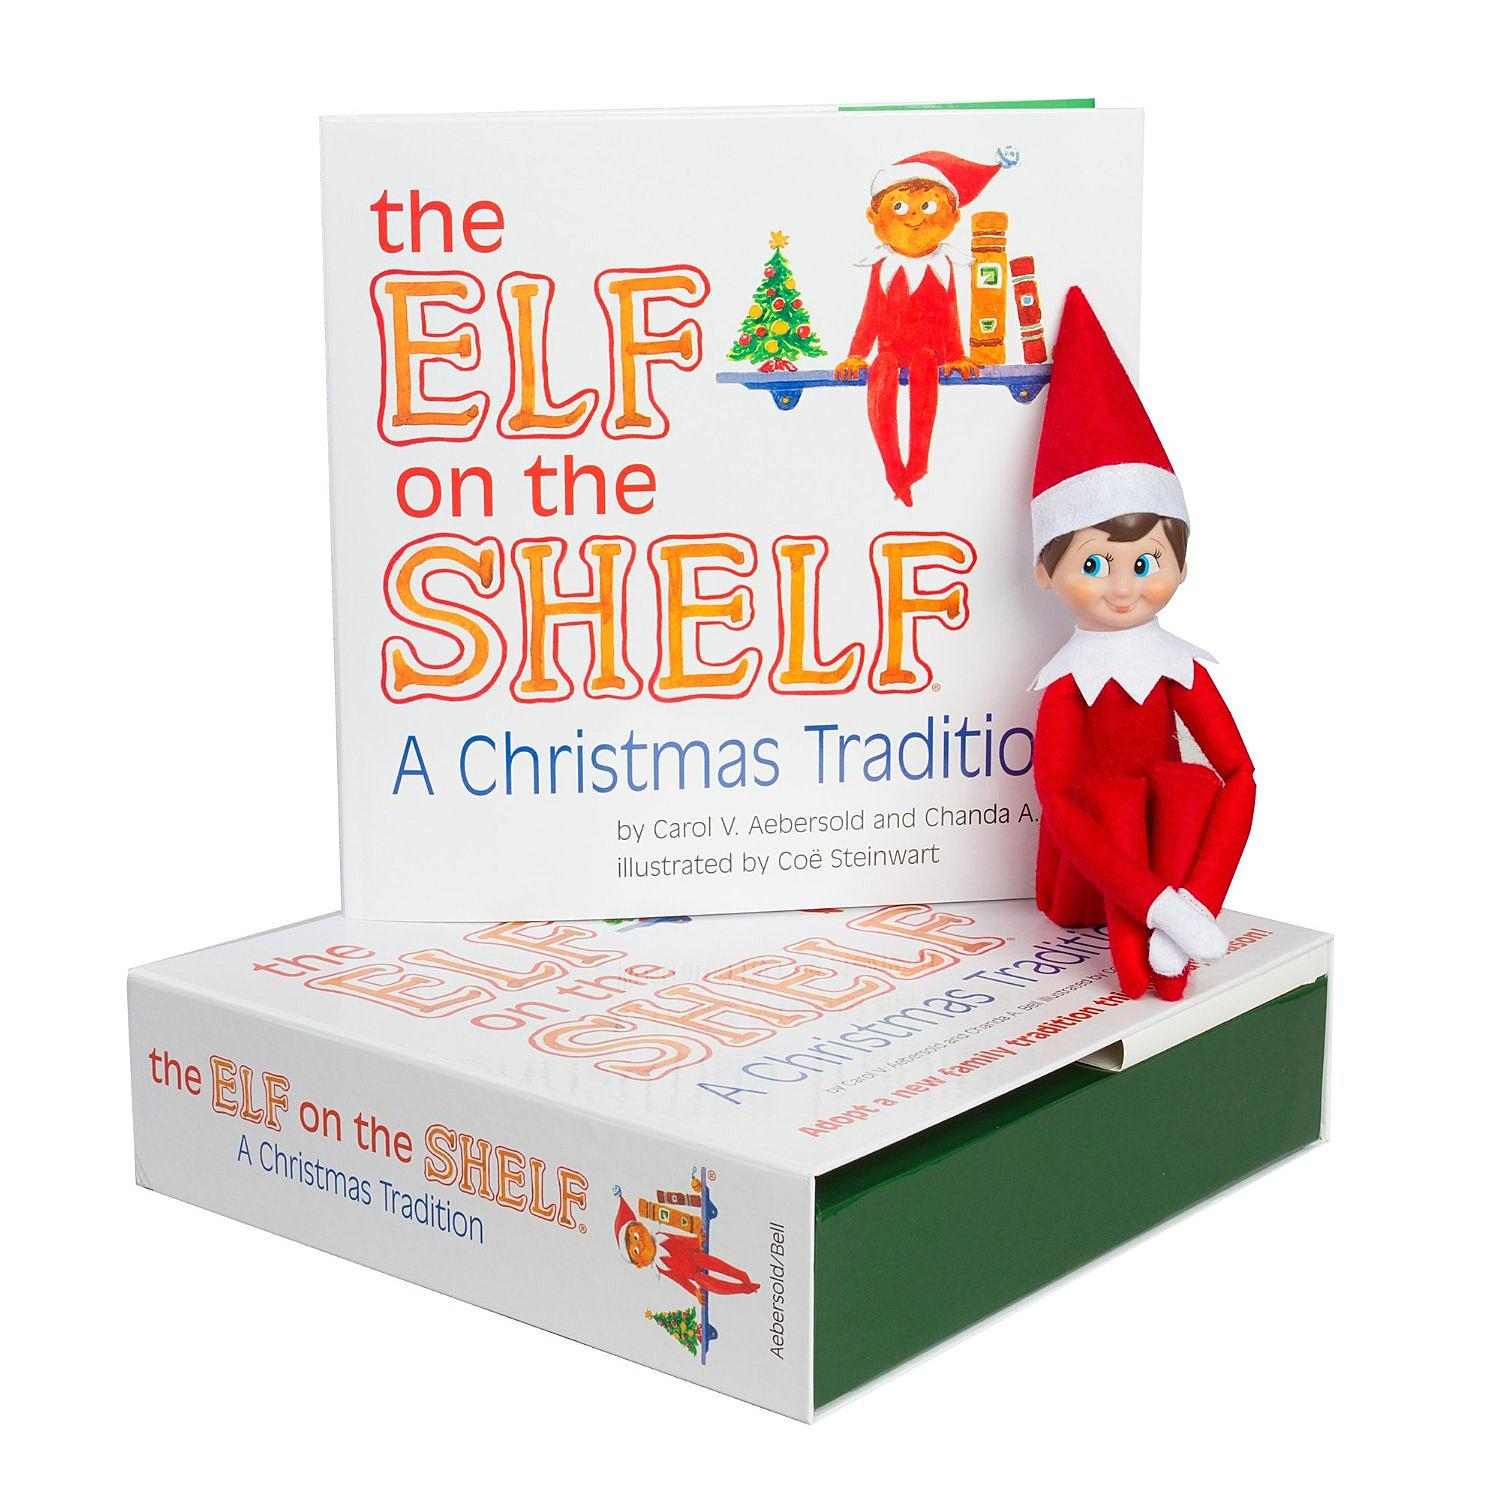 The Real Truth Behind \'The Elf on the Shelf\' [PHOTOS]